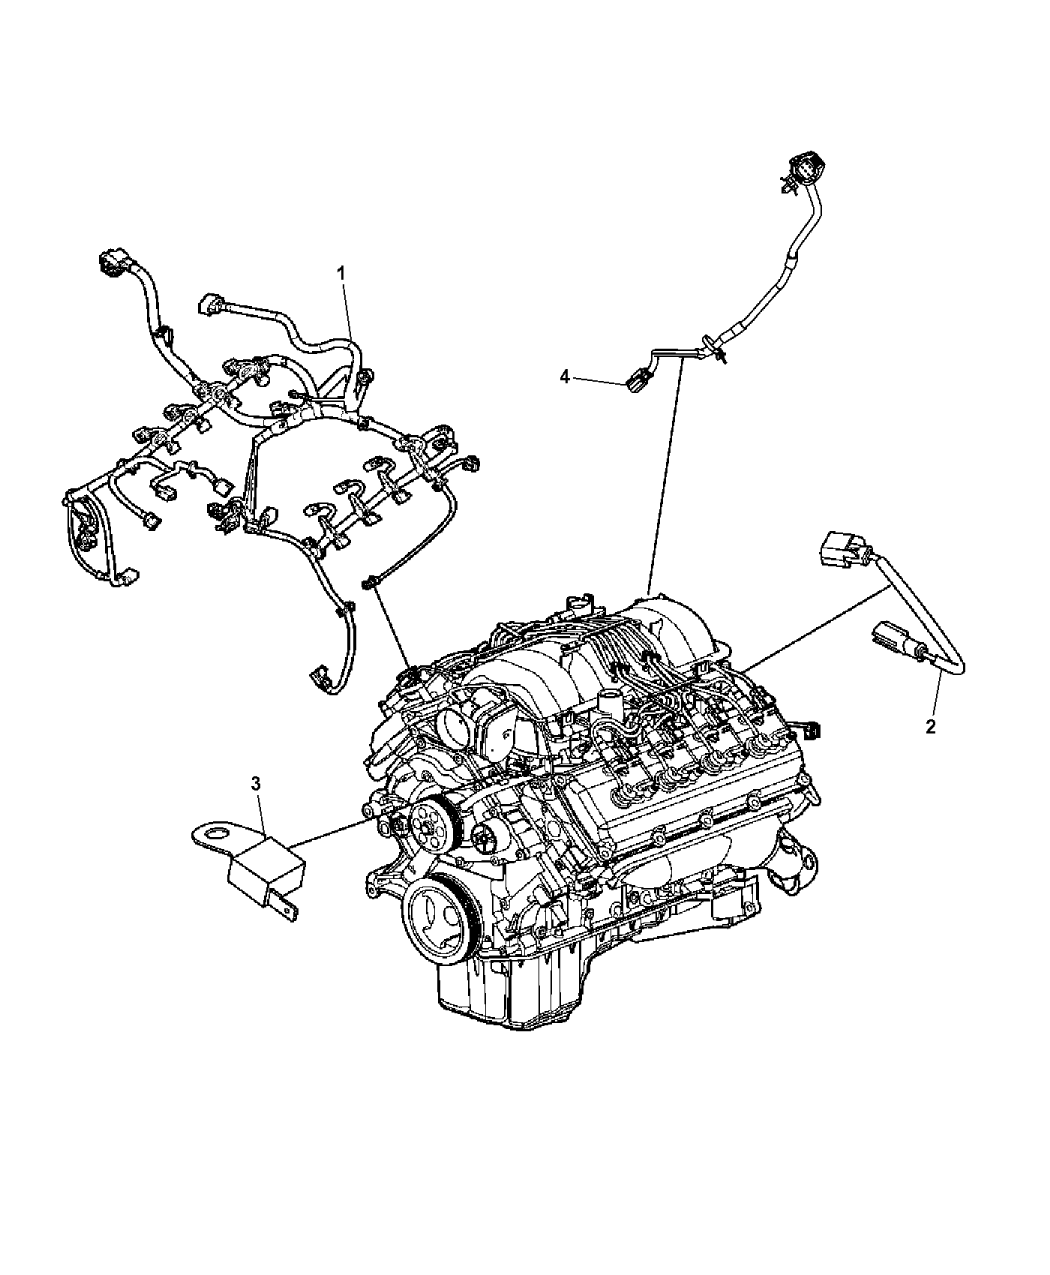 engine diagram for 2006 chevy colorado 4 cylinder engine dodge engine diagram for 57 68183842ab - genuine dodge wiring-engine